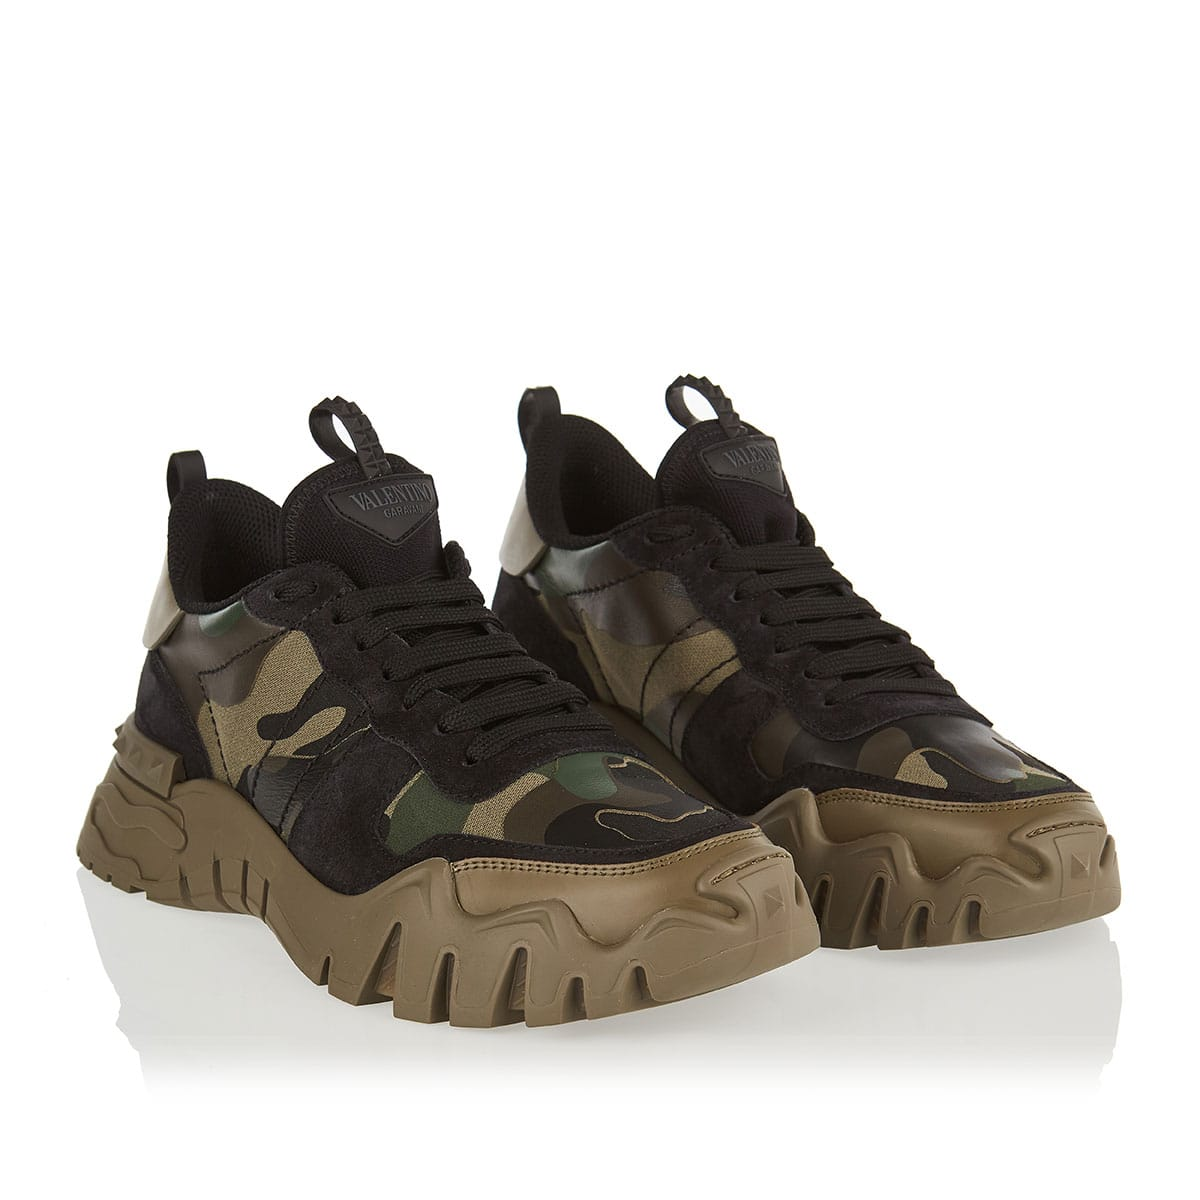 Rockrunner Plus camouflage chunky sneakers